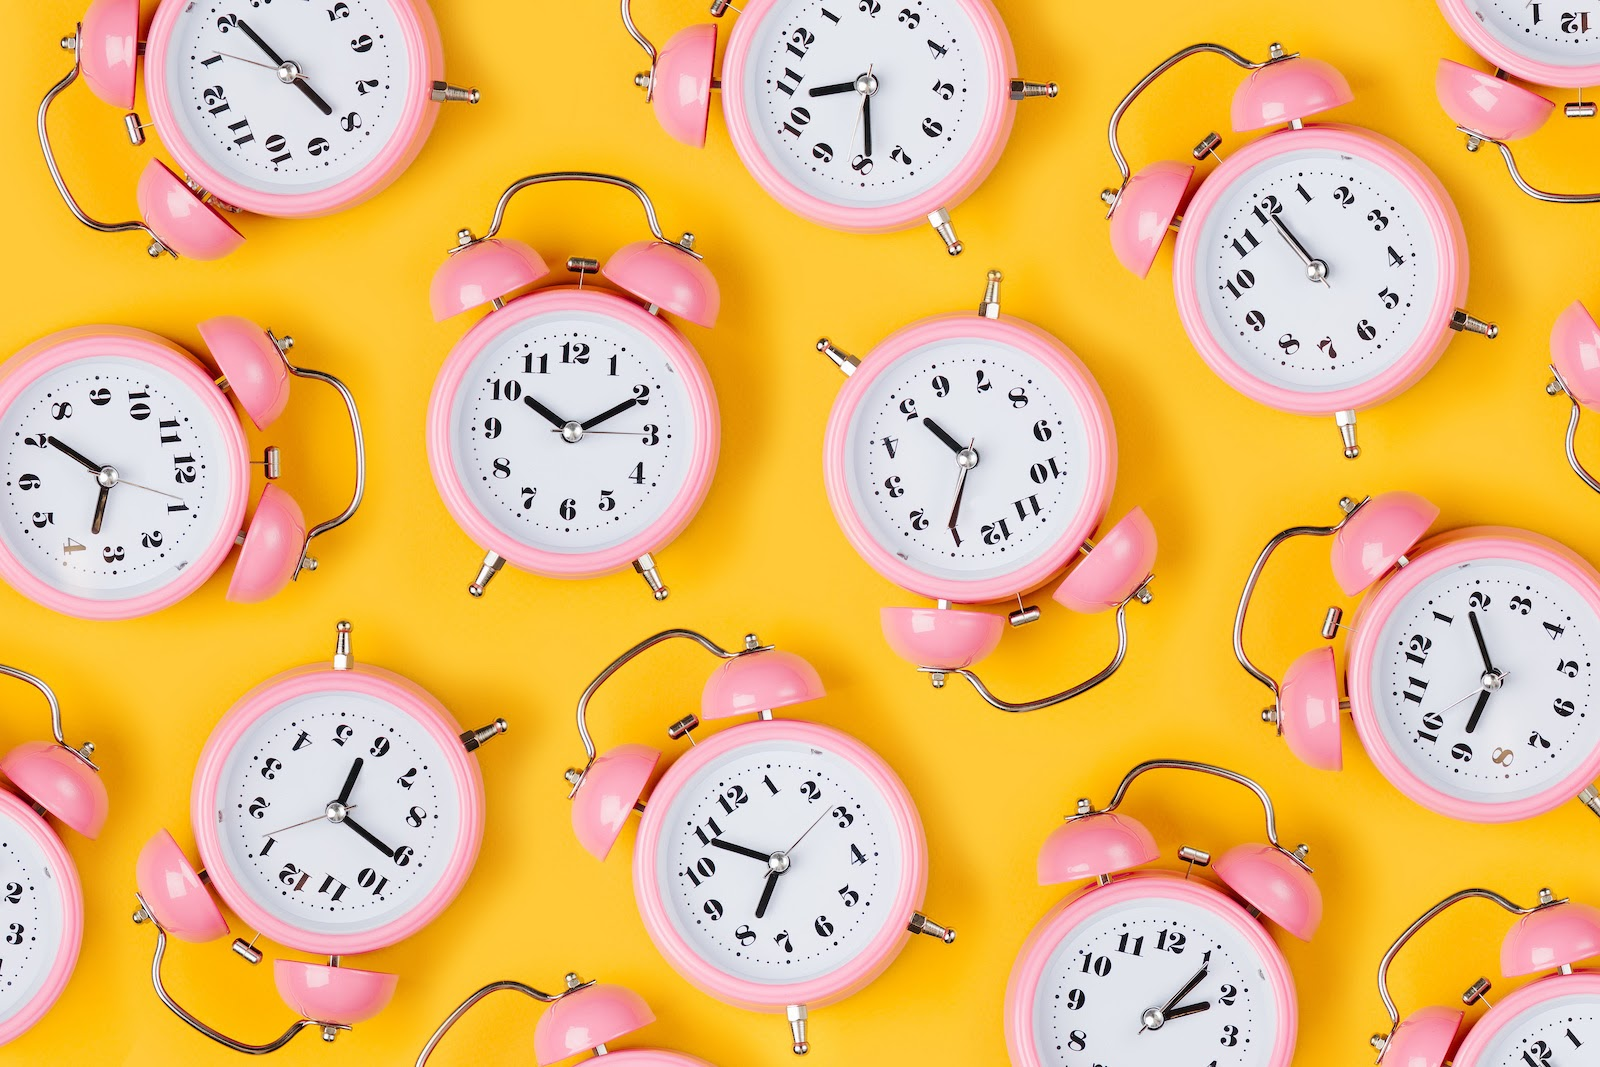 Brightly colored alarm clocks represent time management software